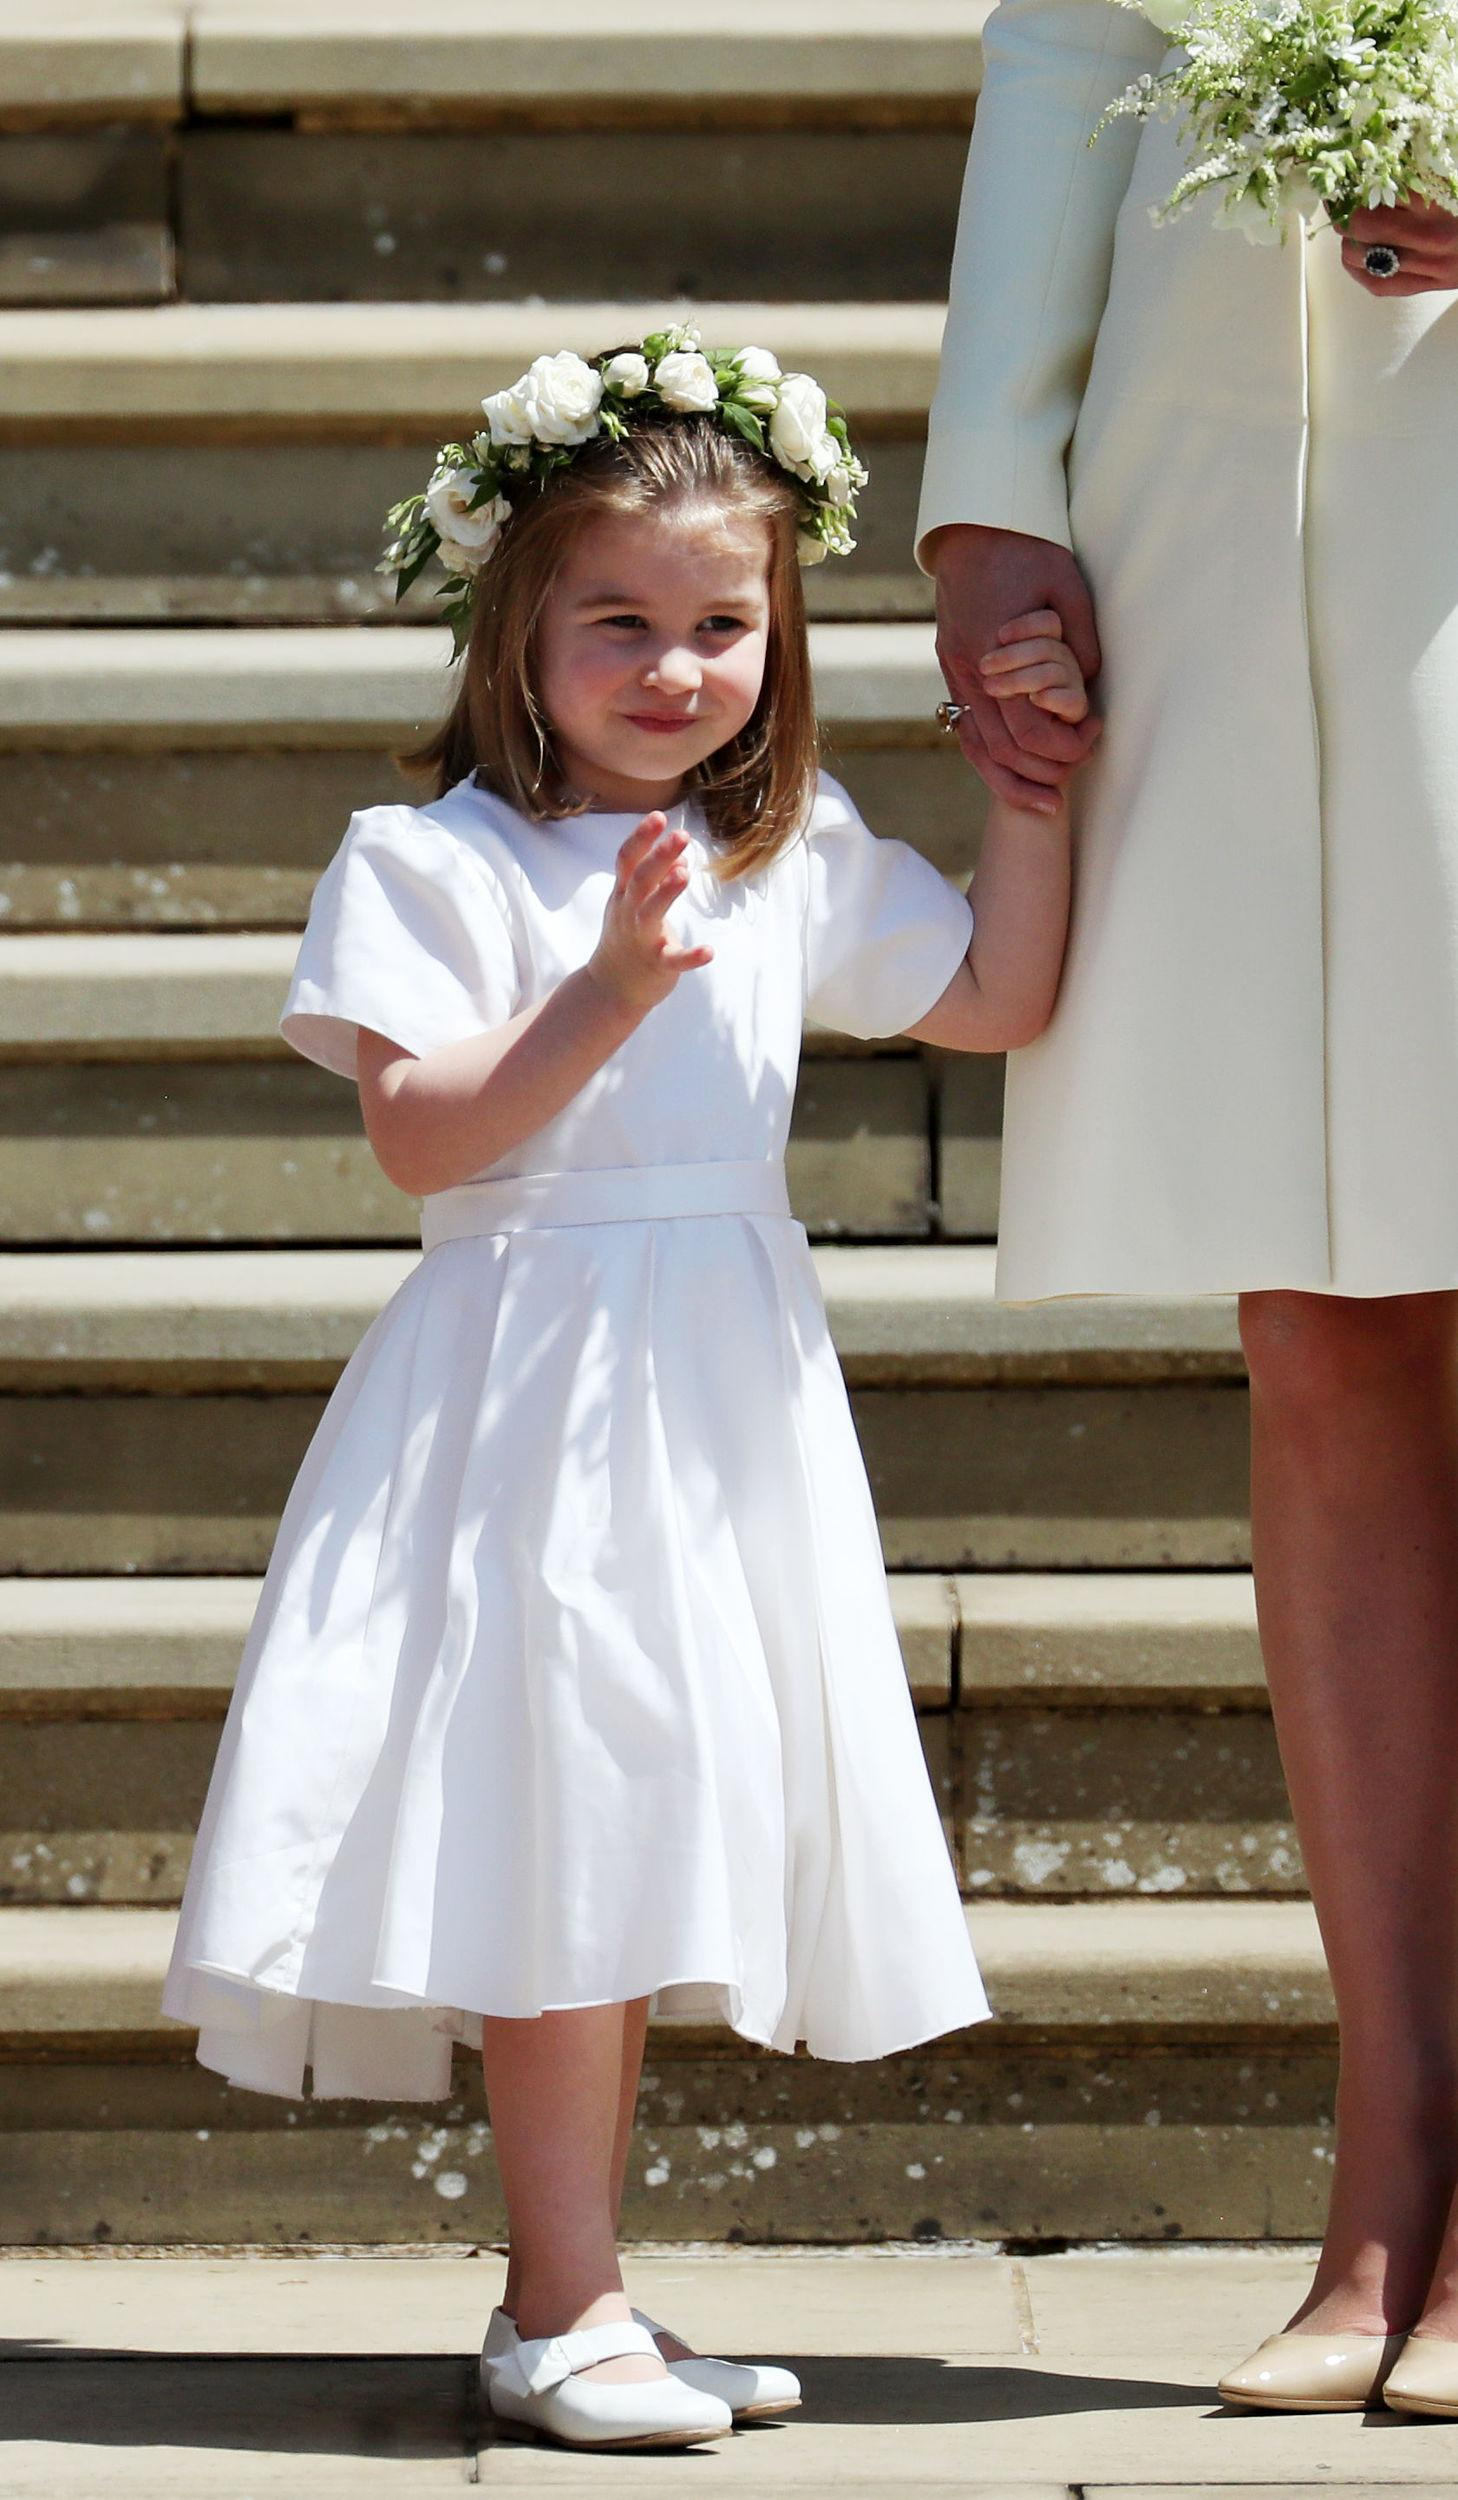 <p>Princess Charlotte on the steps of St George's Chapel after the wedding of Prince Harry and Meghan Markle in St George's Chapel at Windsor Castle on May 19, 2018 in Windsor, England.</p>  <p>(Photo by Jane Barlow - WPA Pool/Getty Images)</p>